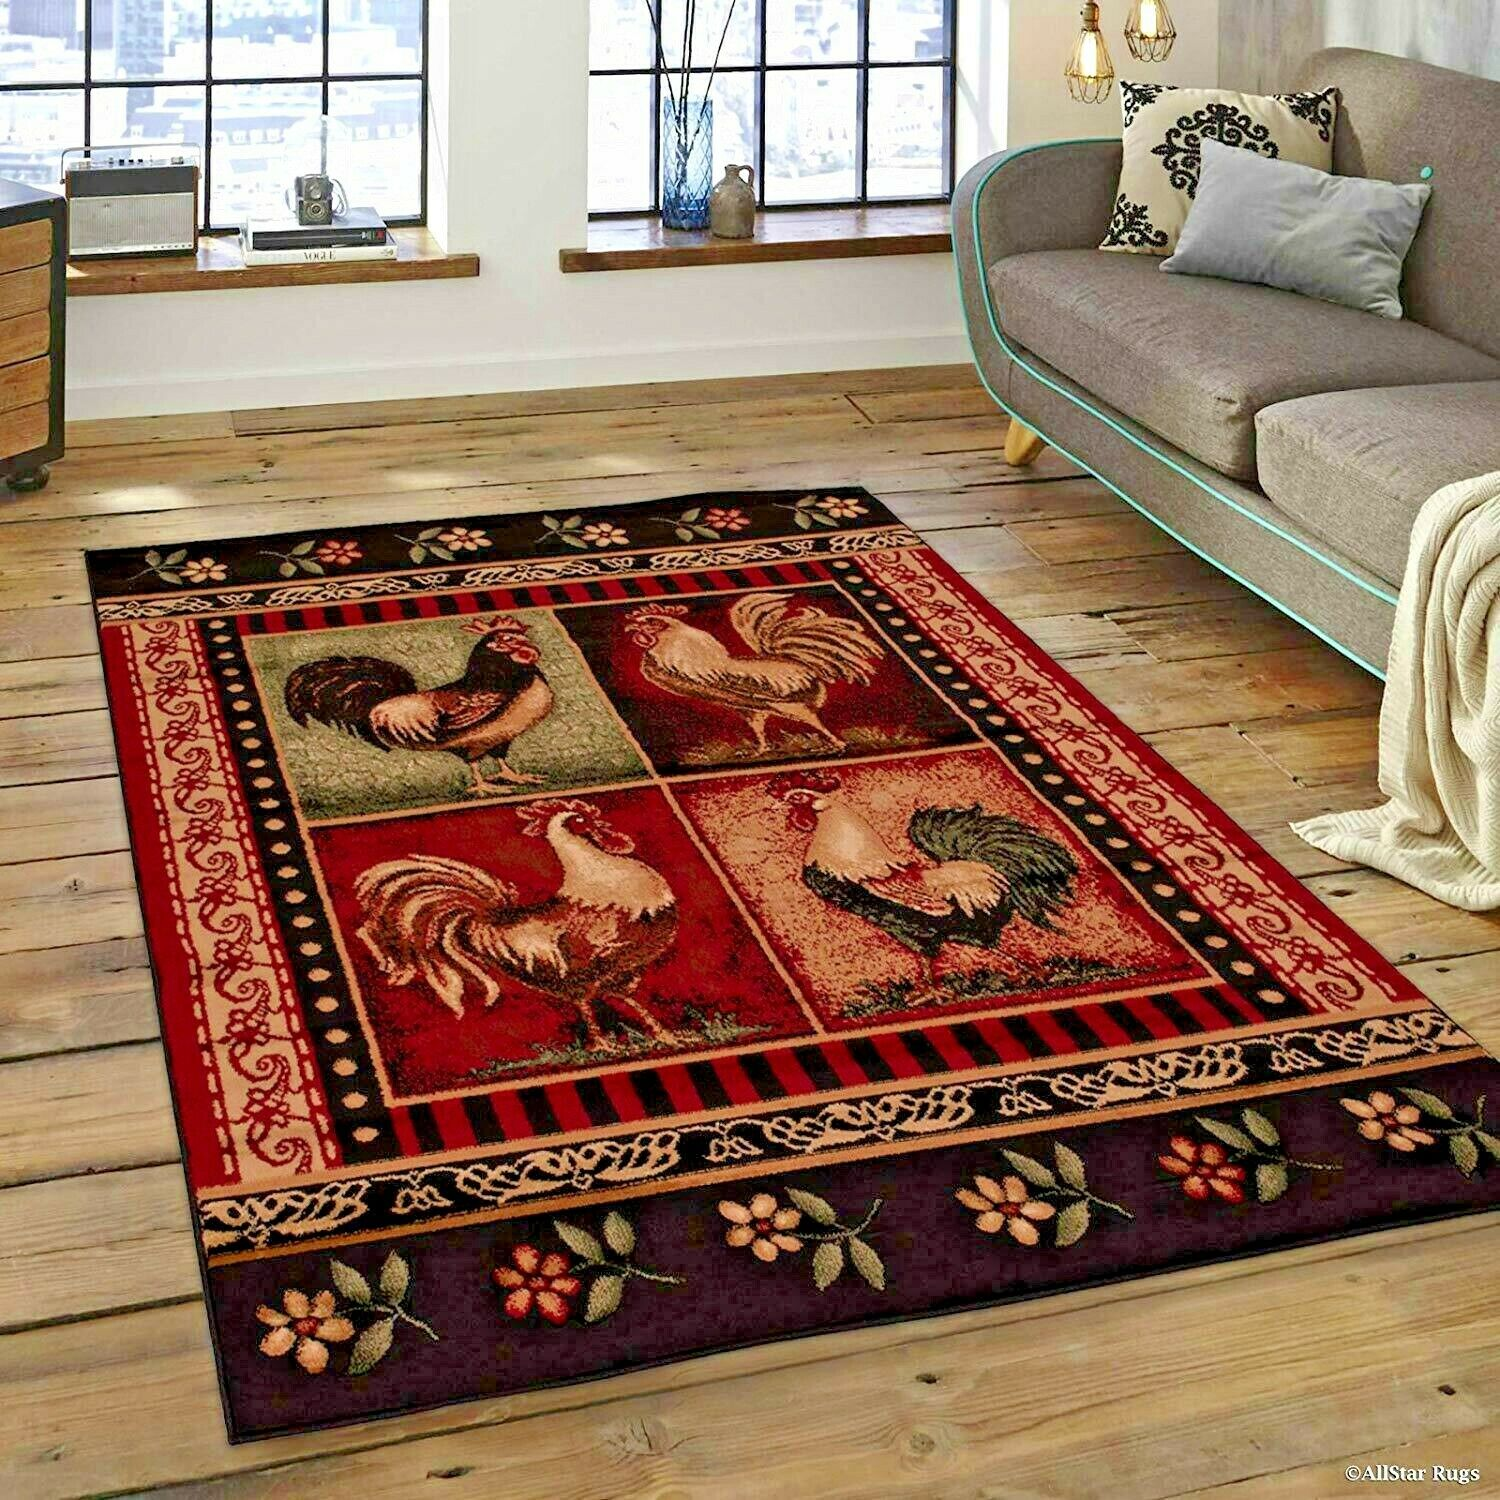 Rugs Area Carpets 8x10 Rug Modern Rooster Kitchen Large Floor 5x7 Ebay